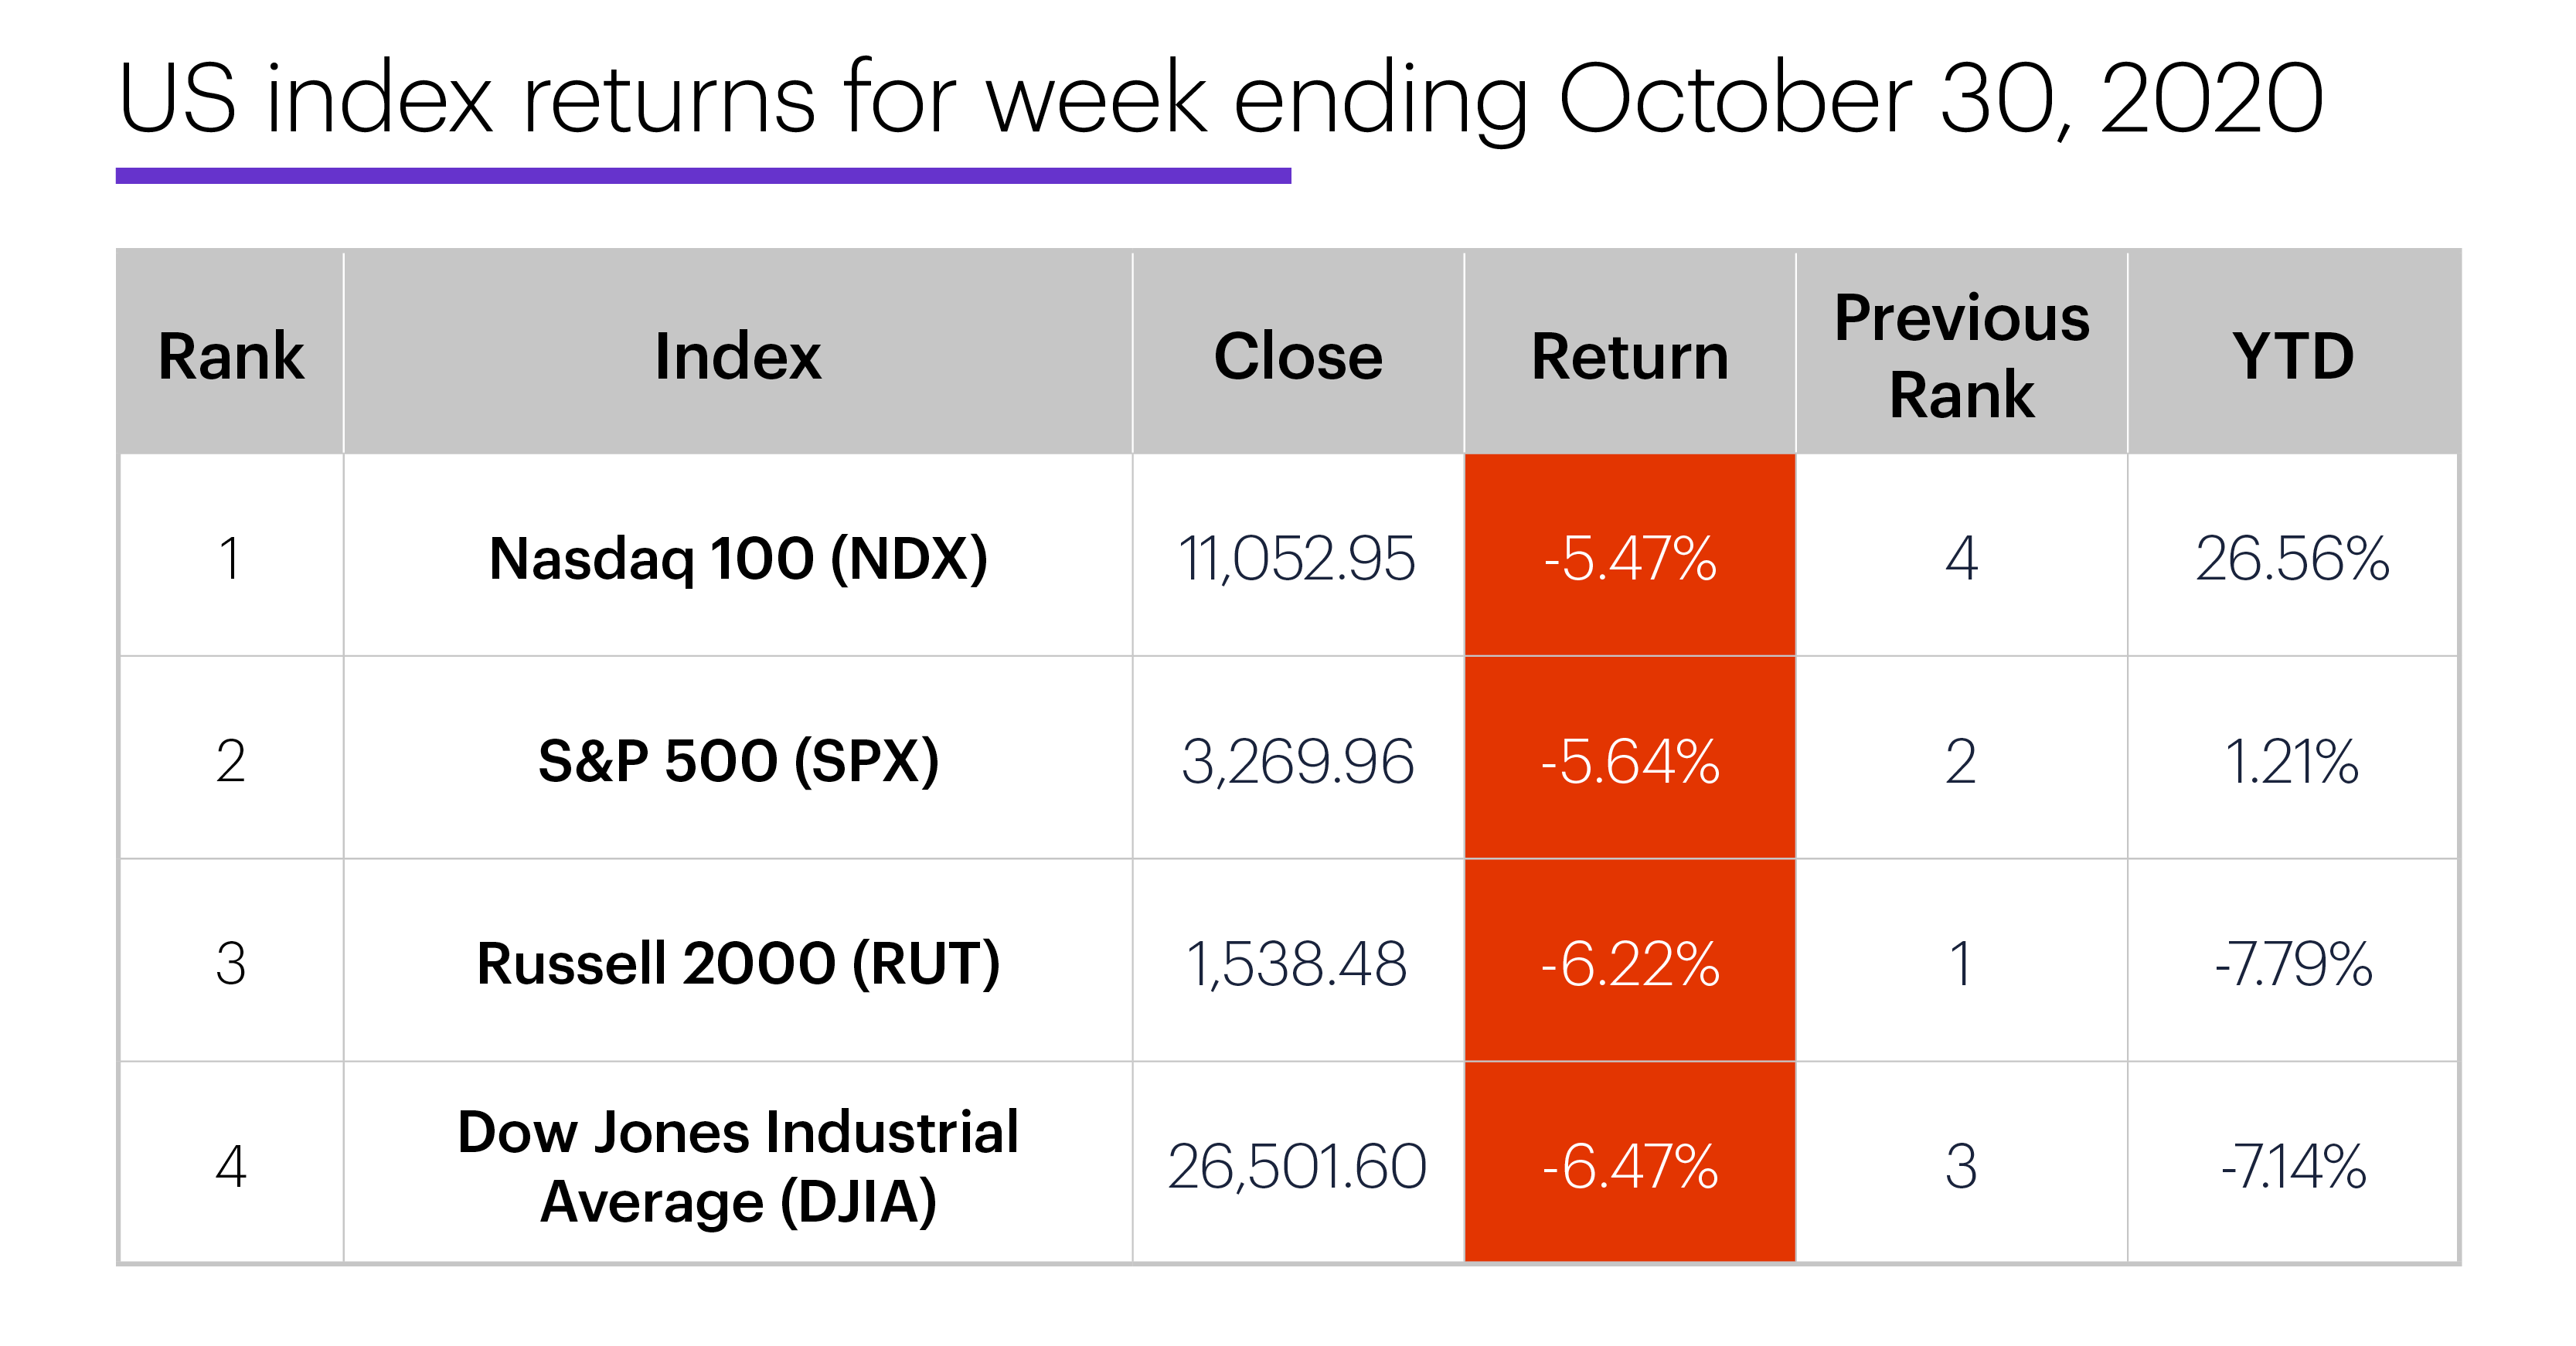 US stock index performance table for week ending 10/30/20. S&P 500 (SPX), Nasdaq 100 (NDX), Russell 2000 (RUT), Dow Jones Industrial Average (DJIA).